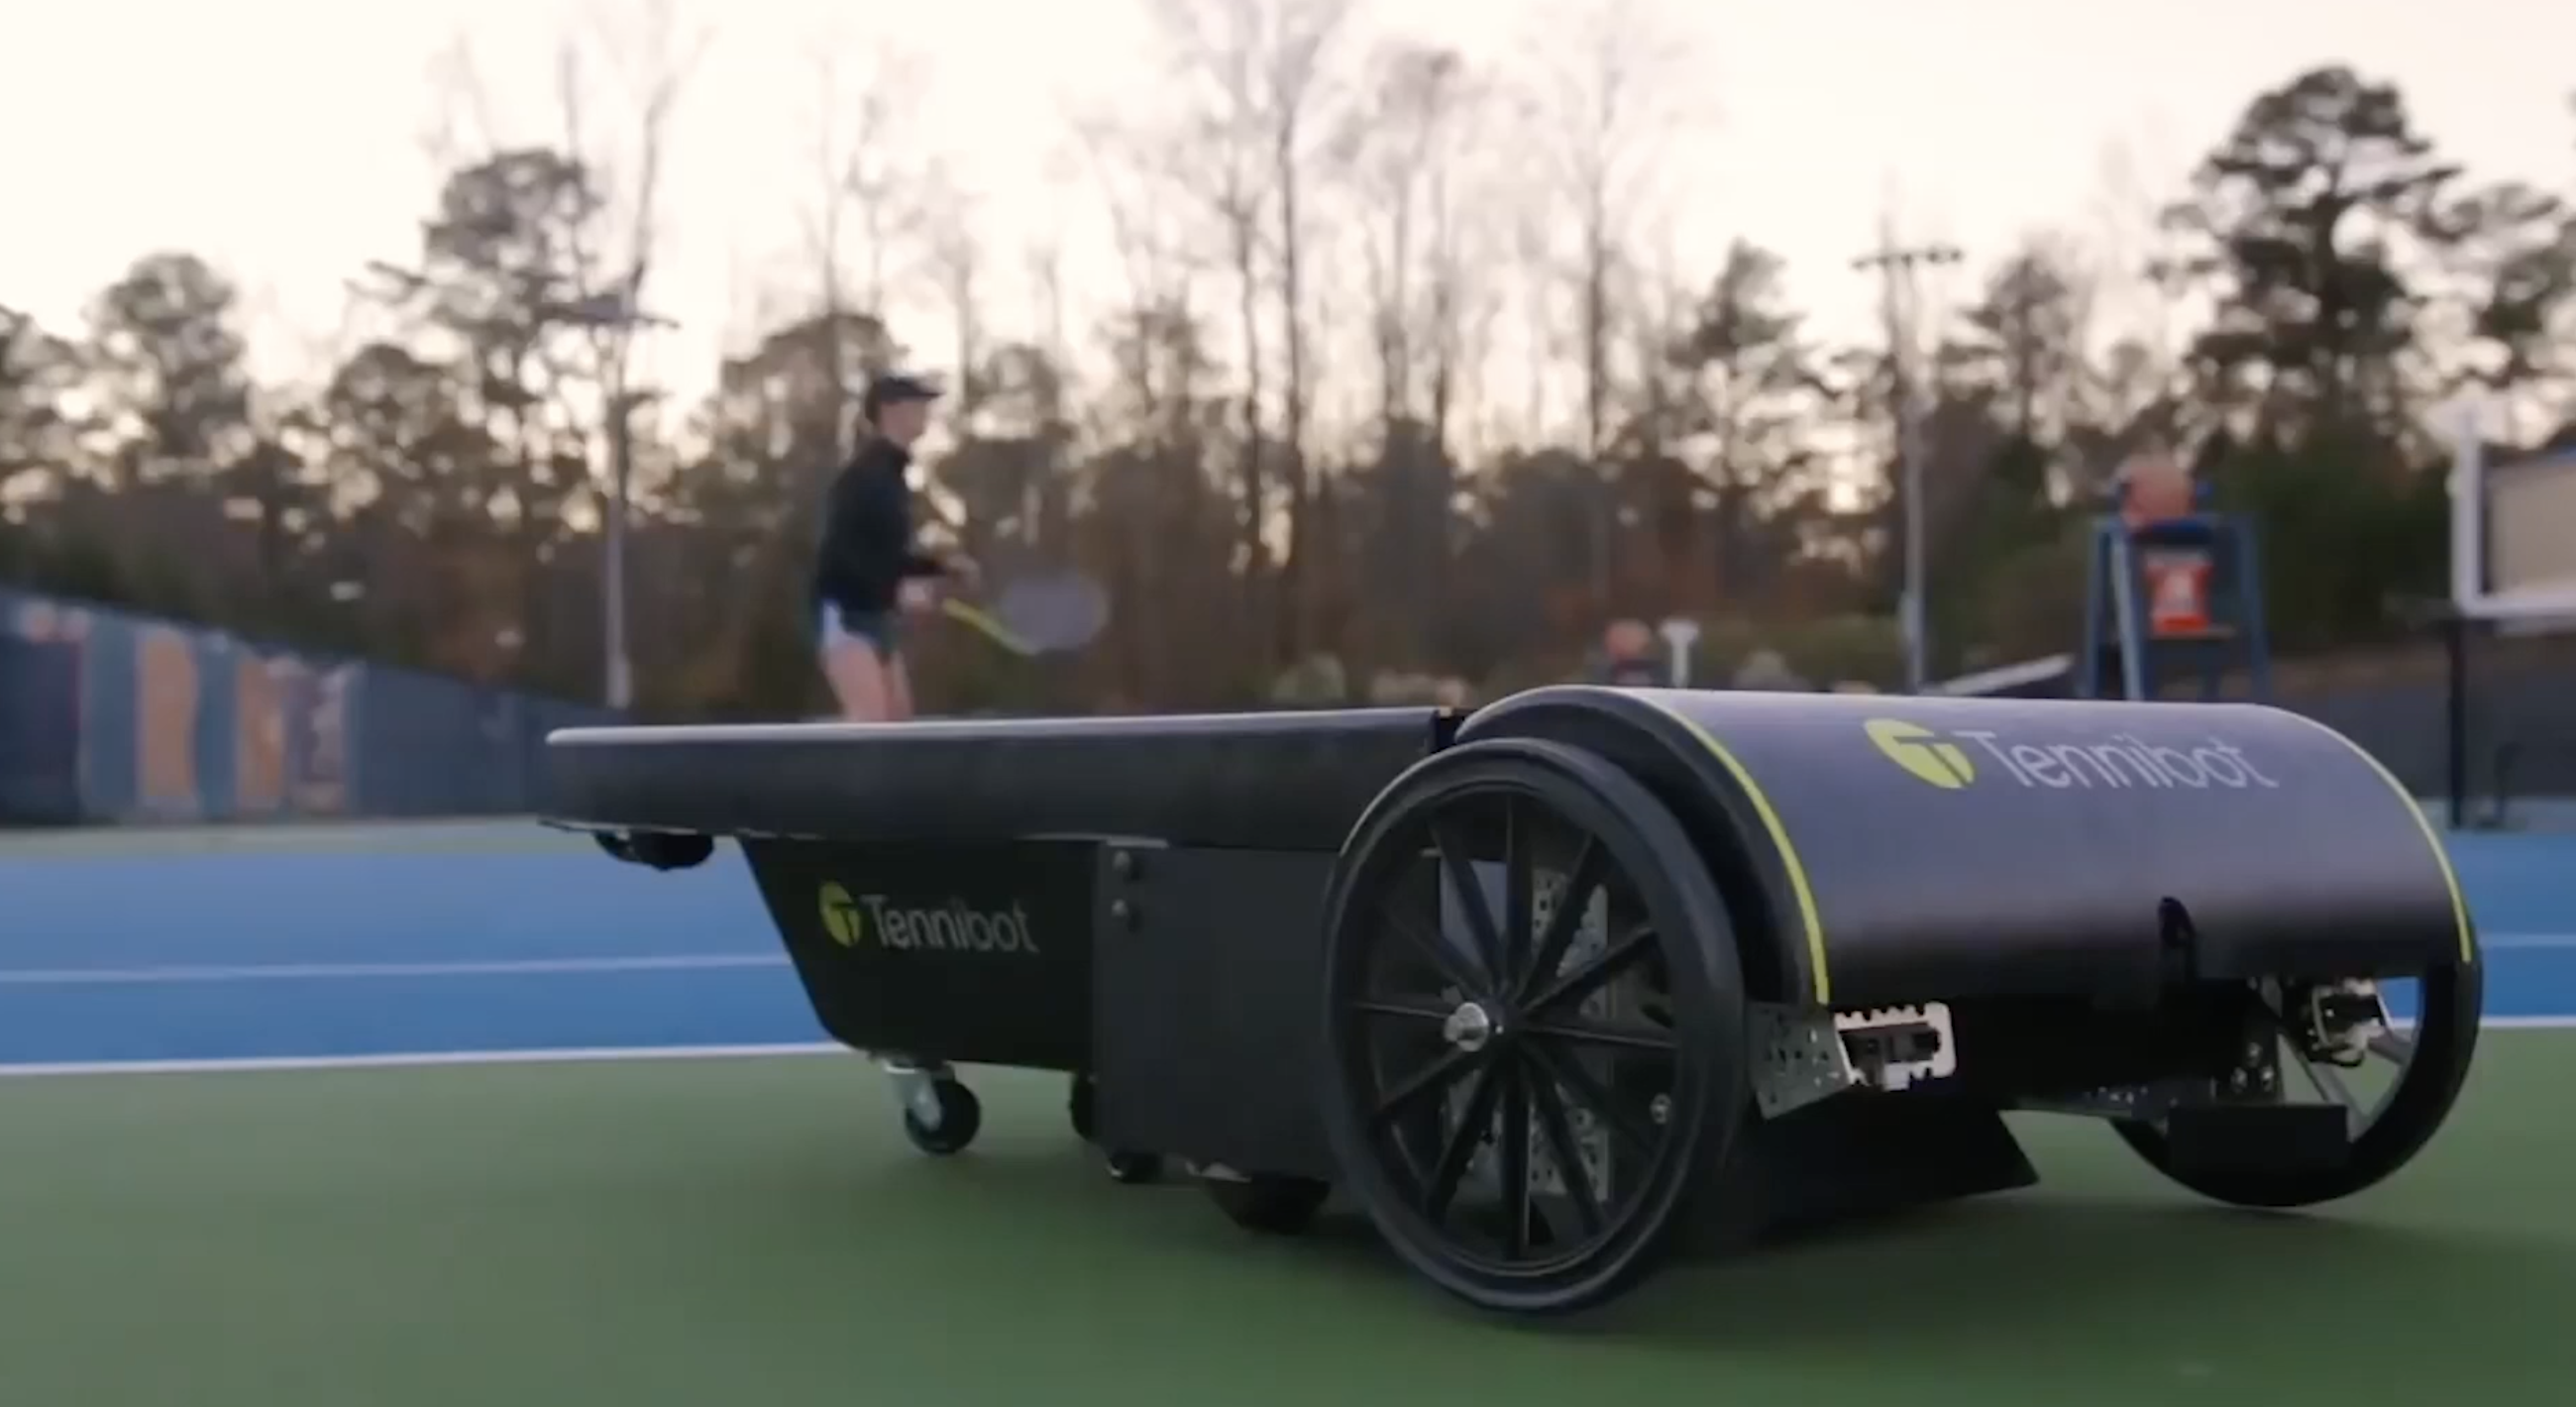 Tennibot autonomous tennis ball collector